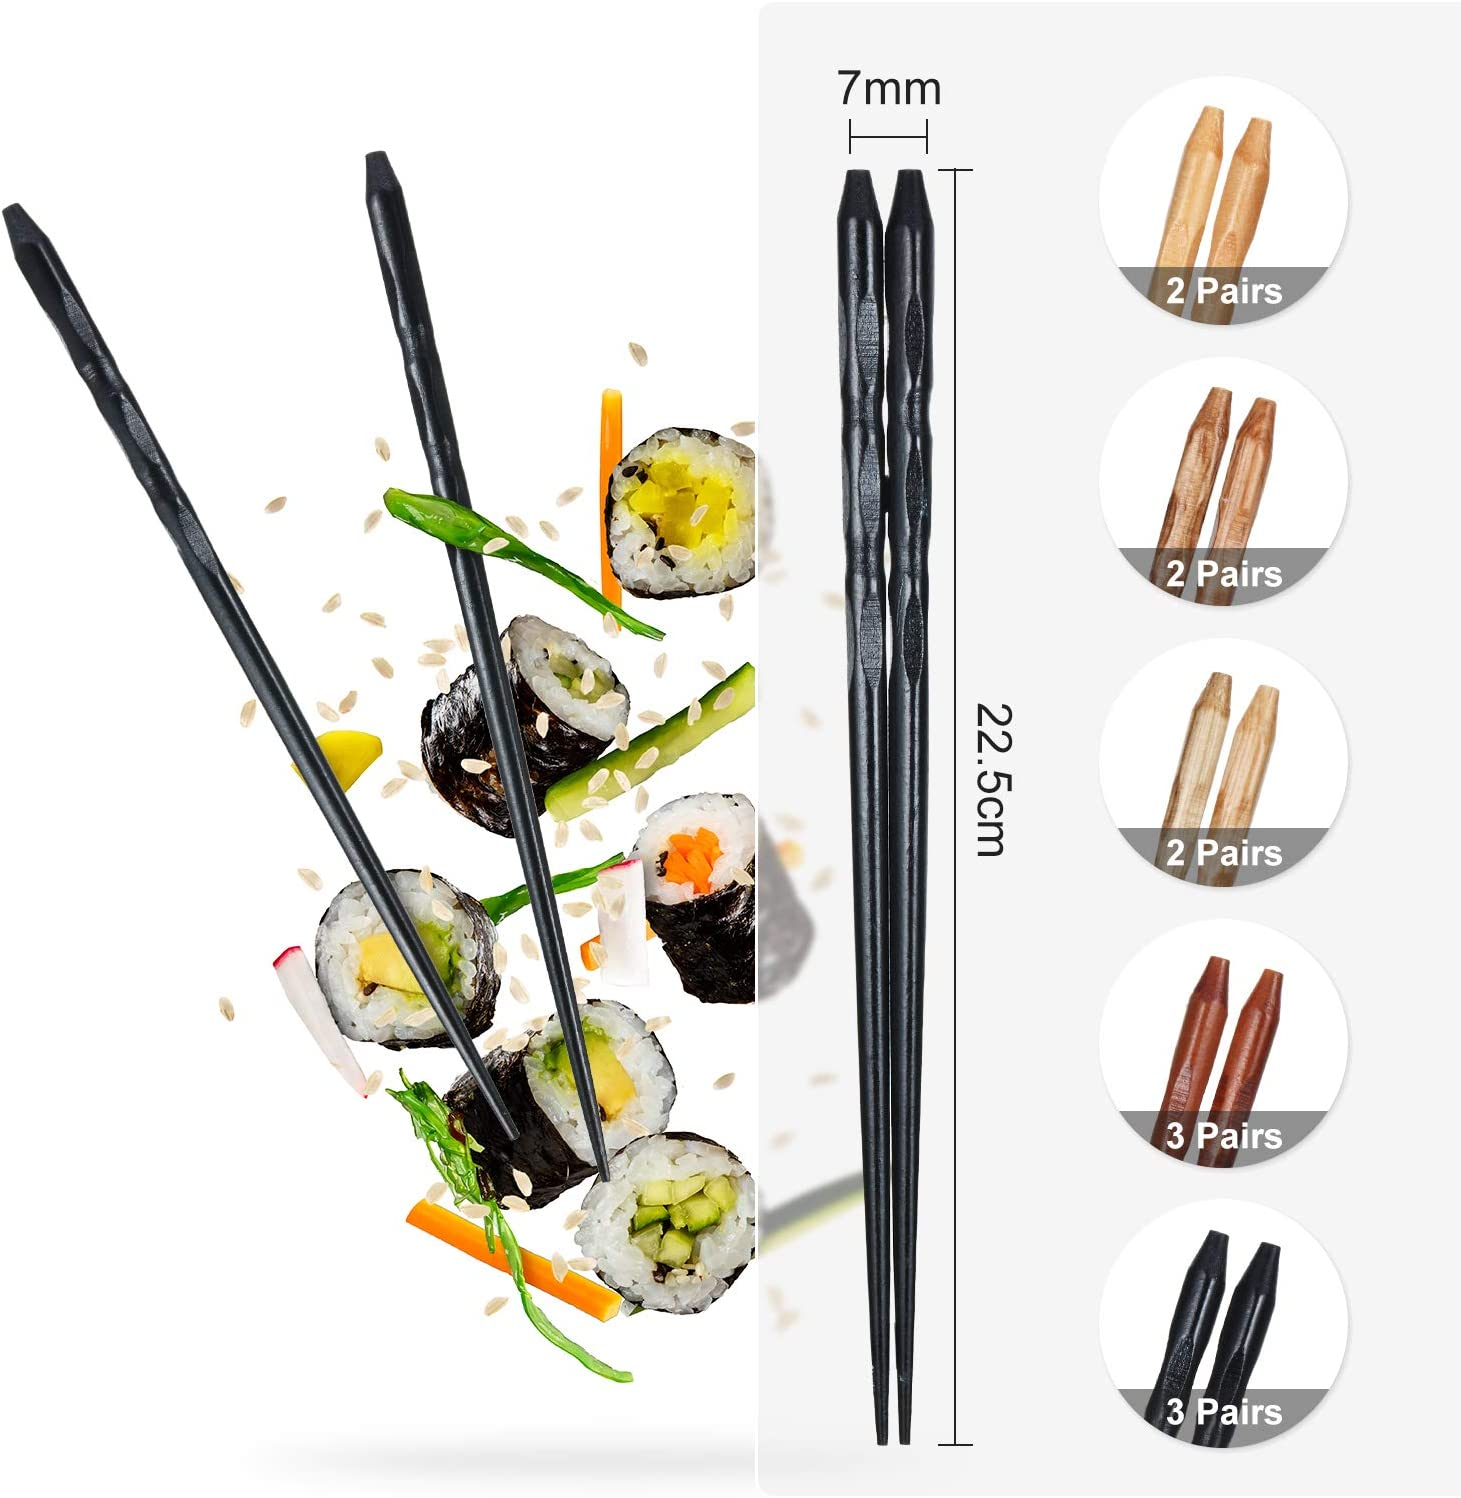 5 Colors 12 Pairs Wood Chopsticks Wooden Reusable Chopsticks Non-slip and Dishwasher Safe for Home Kitchen Cooking Tableware Gift Set